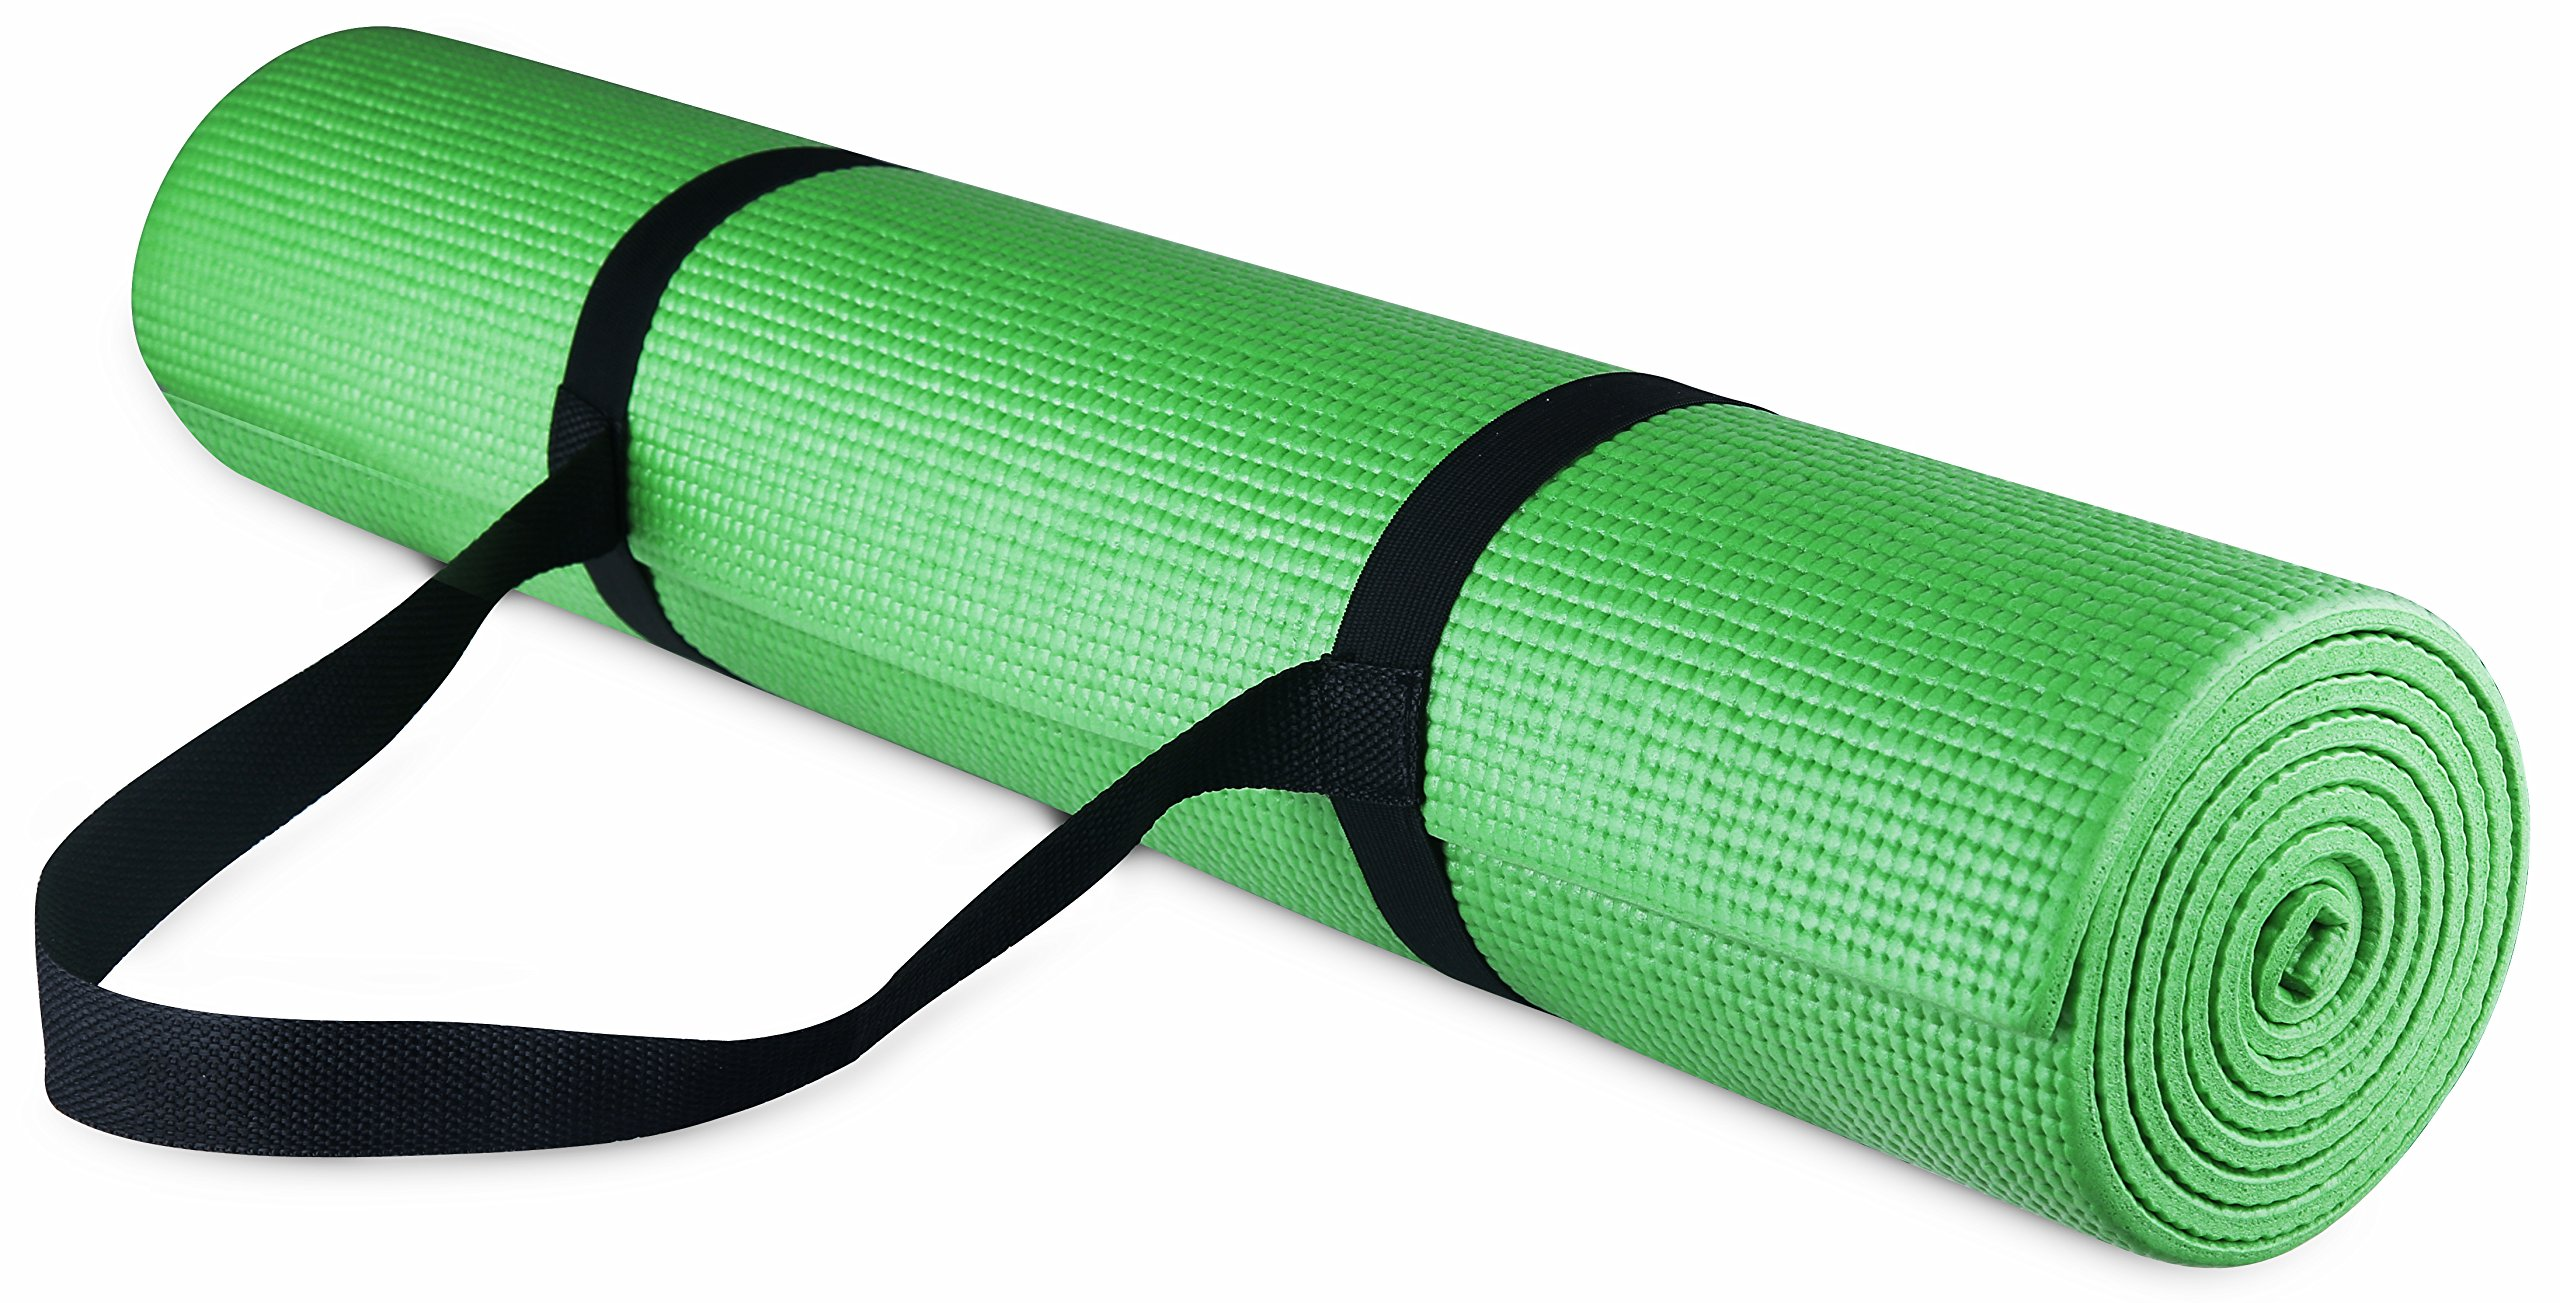 BalanceFrom GoYoga All Purpose High Density Non-Slip Exercise Yoga Mat with Carrying Strap, 1/4'', Green by BalanceFrom